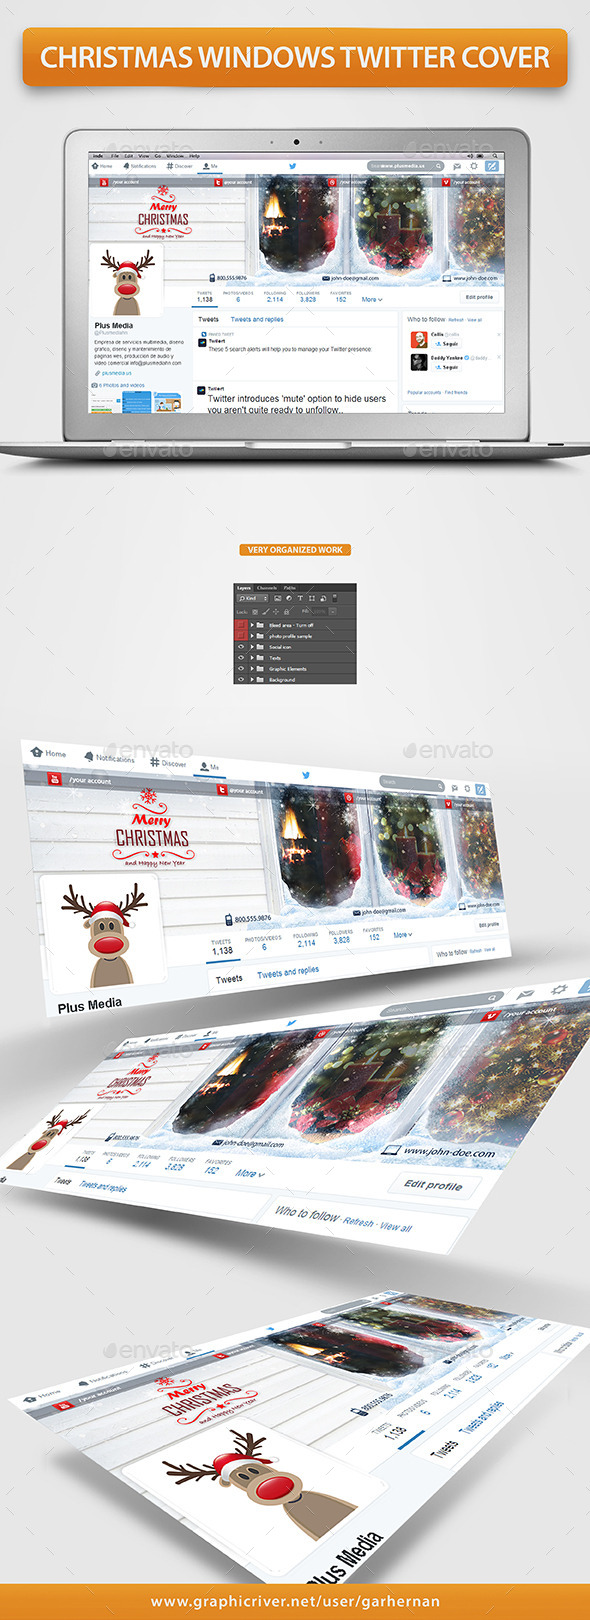 GraphicRiver Christmas Windows Twitter Profile Cover 9663247